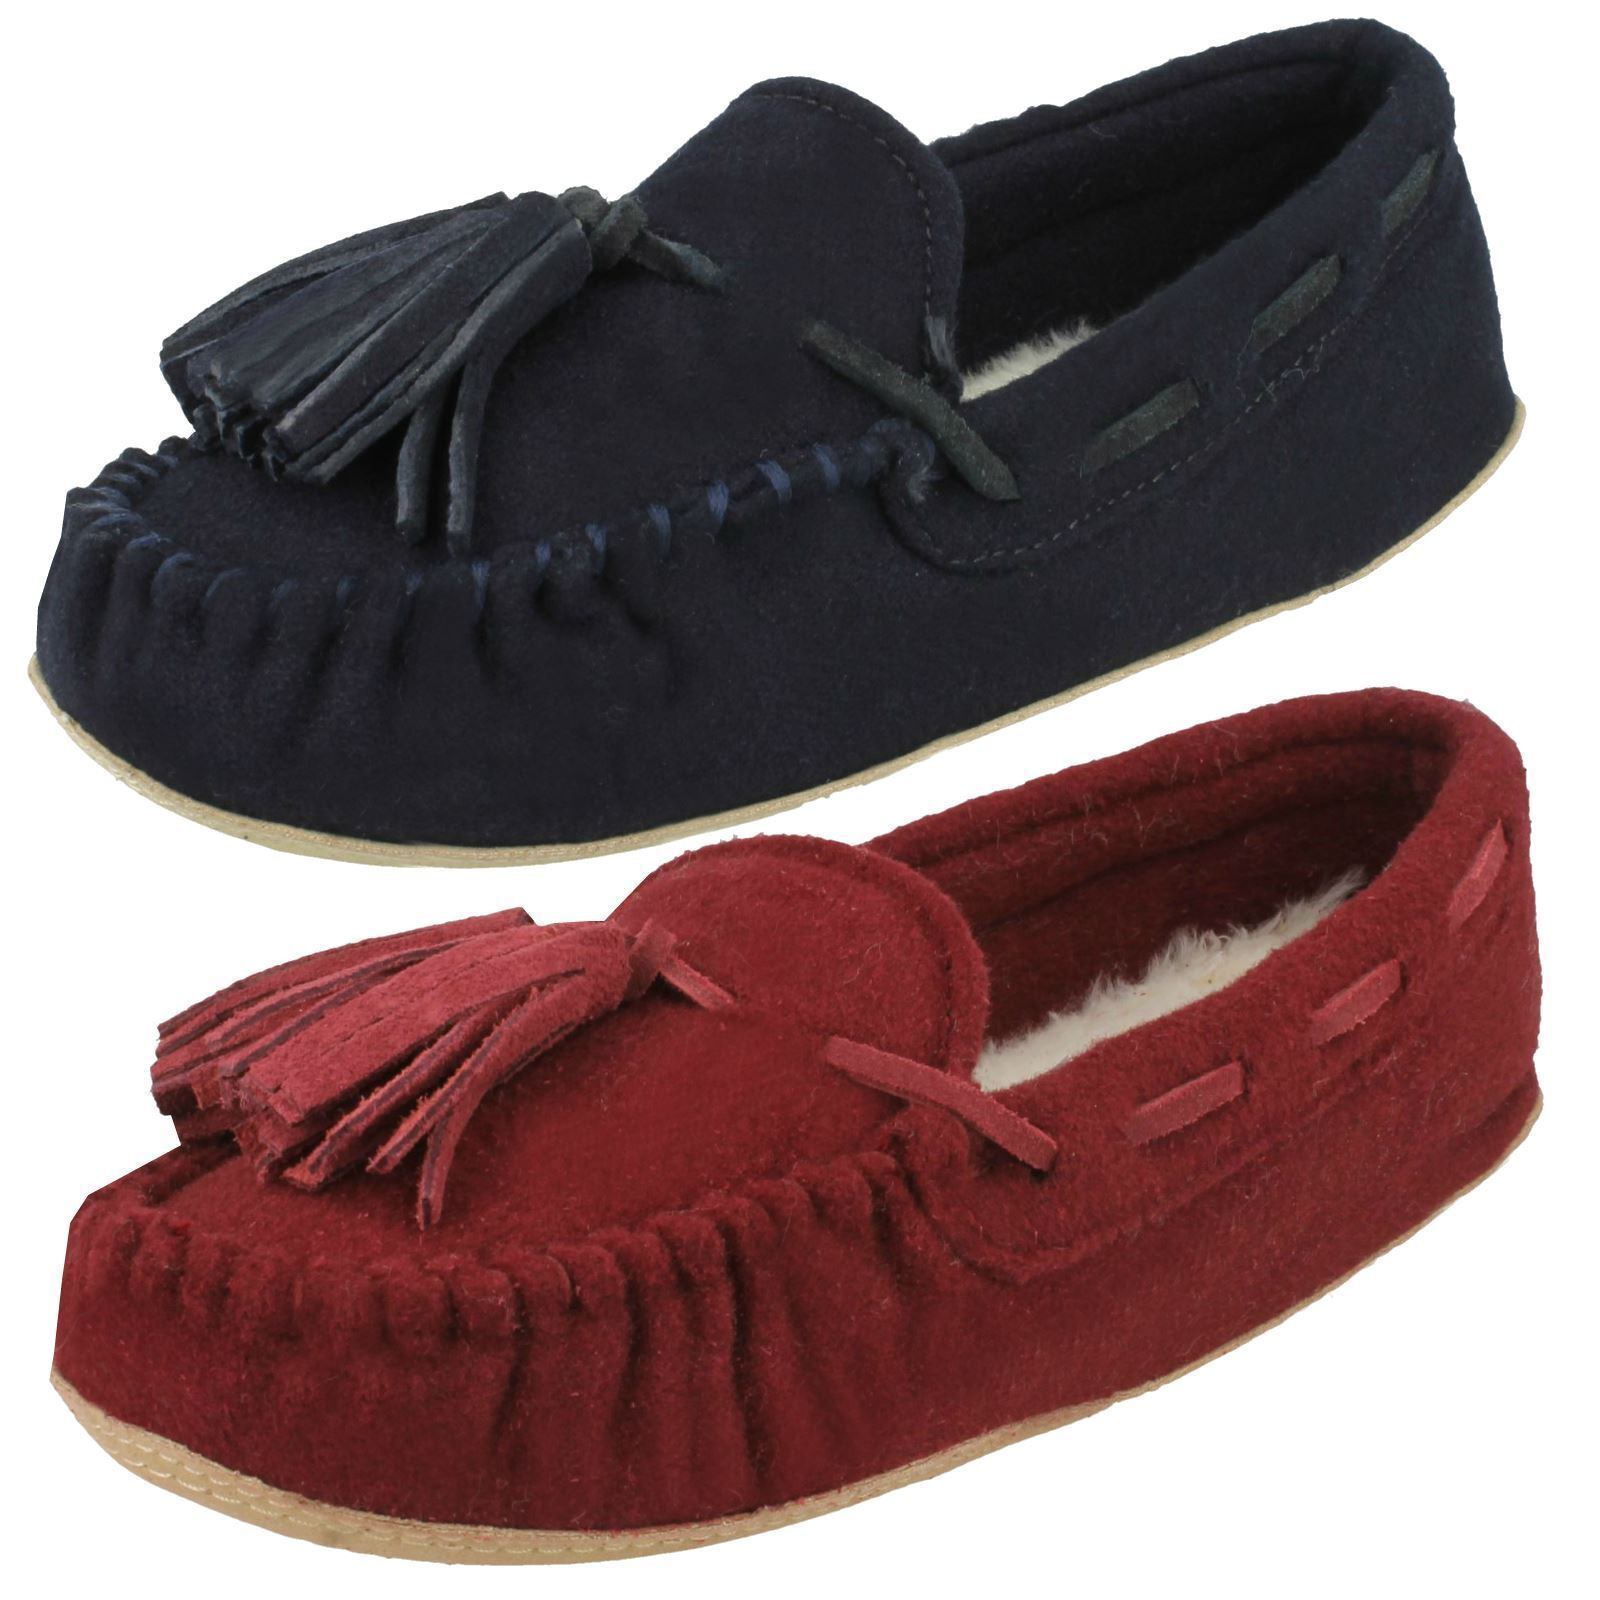 Clarks Ladies Moccassin Slippers 'Cozily Comfy'